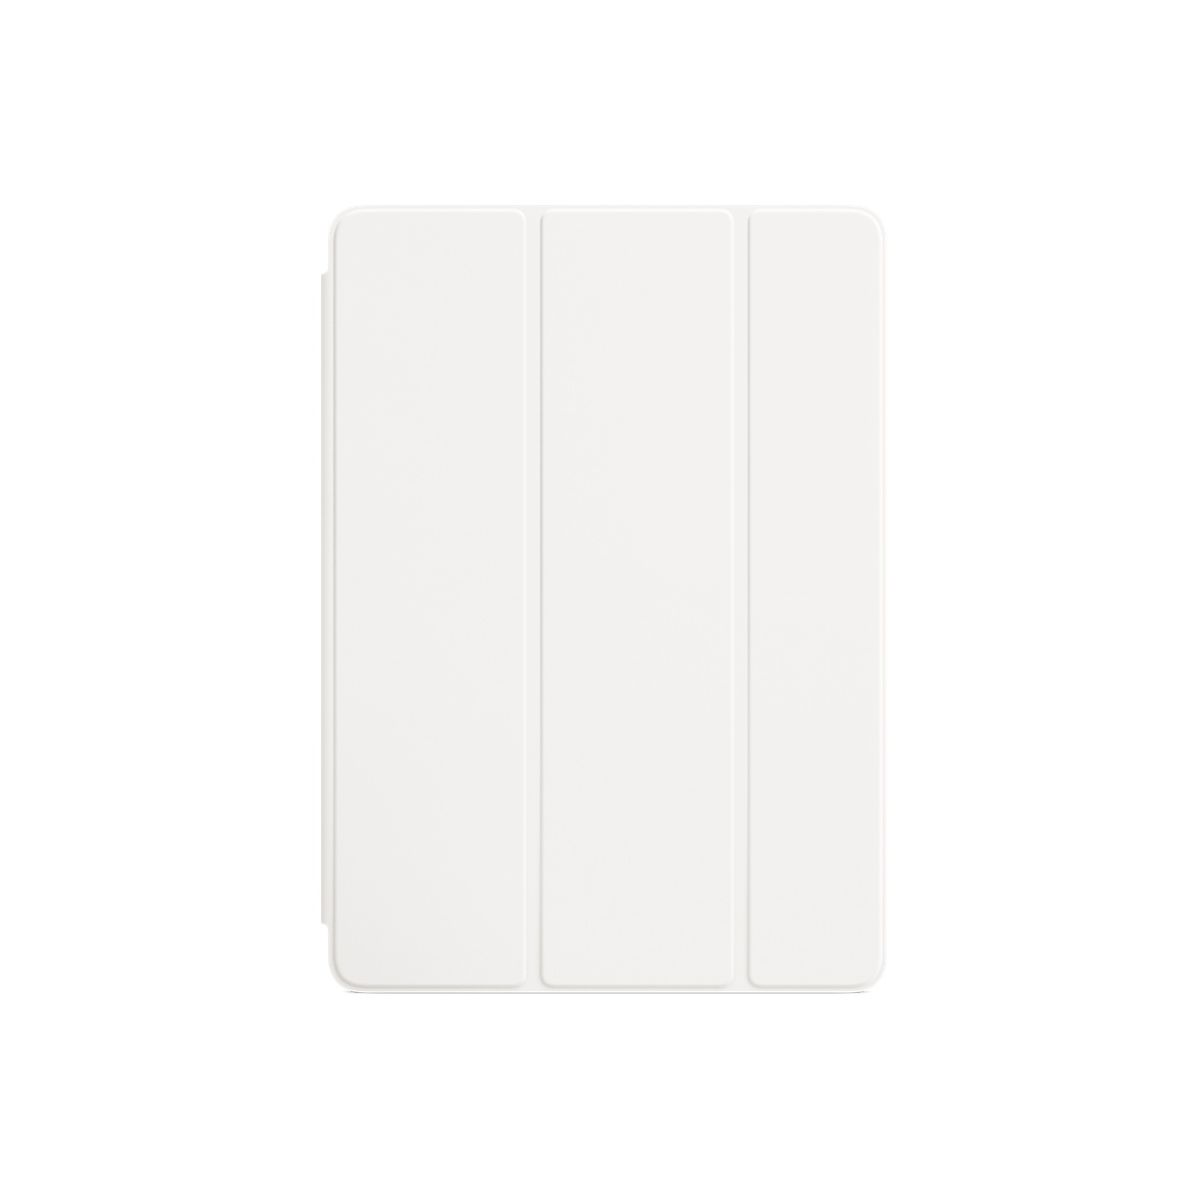 Etui APPLE iPad Air/Air2/9.7 génération 5/6 blanc (photo)